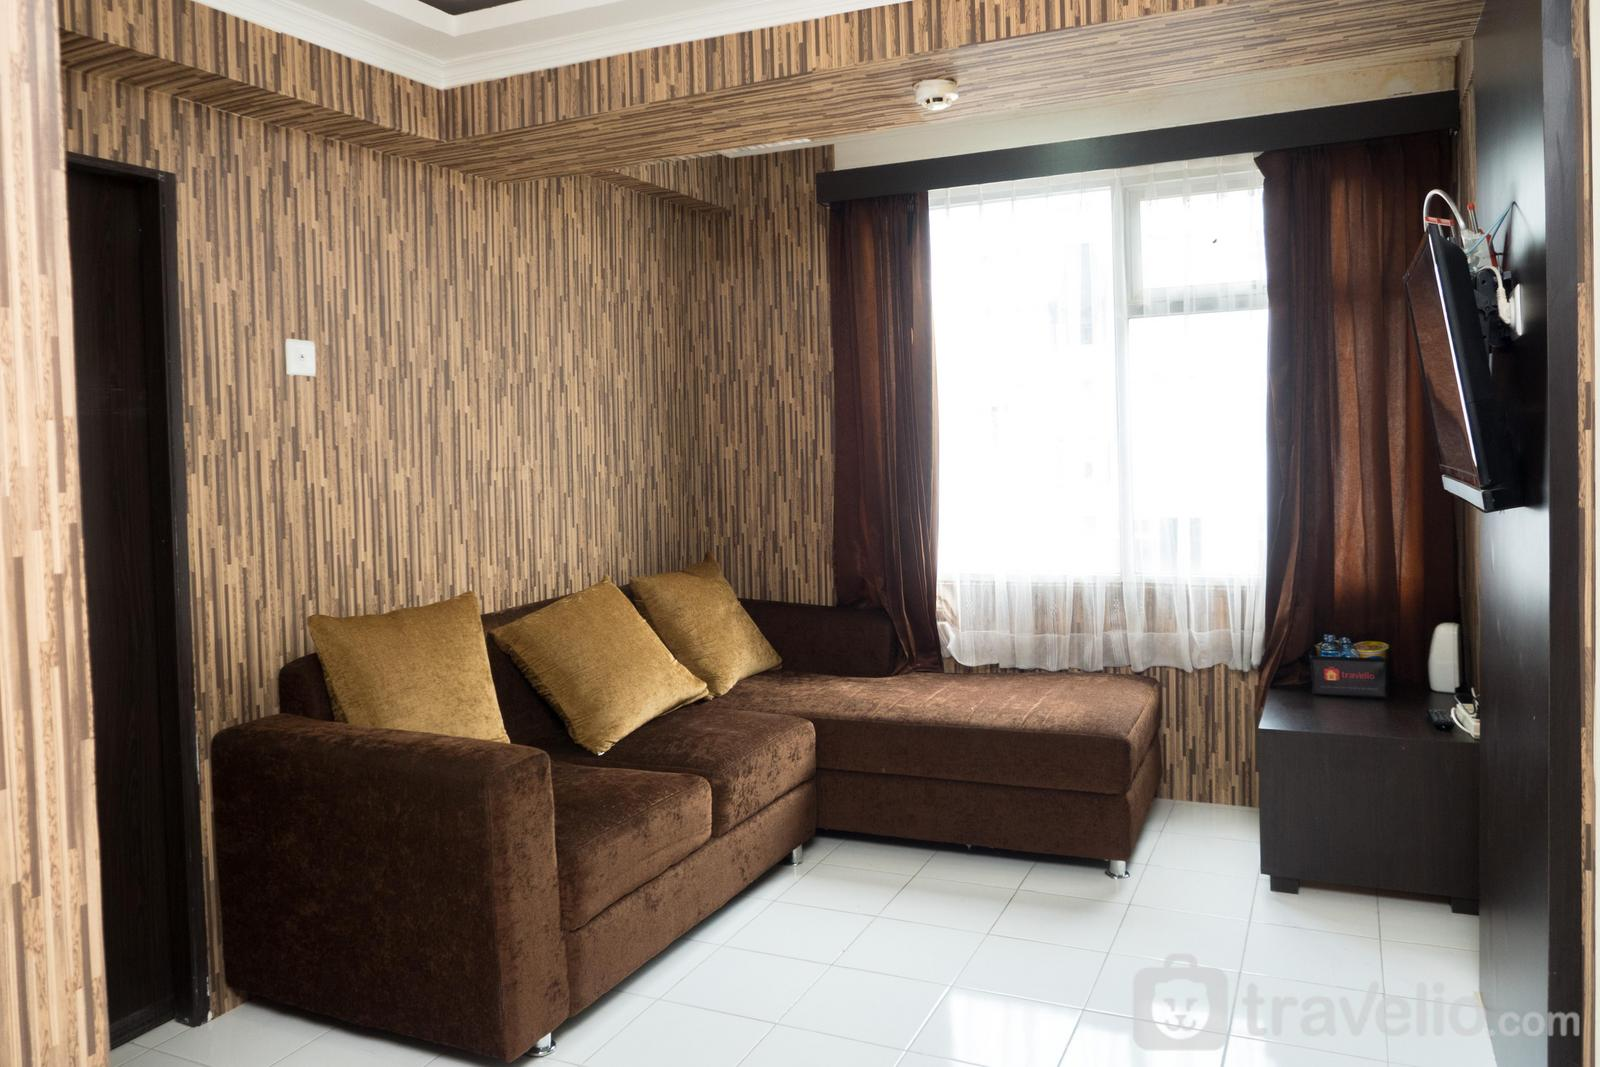 The Jarrdin Cihampelas - Homey 3BR The Jarrdin Apartment near CiWalk Mall By Travelio